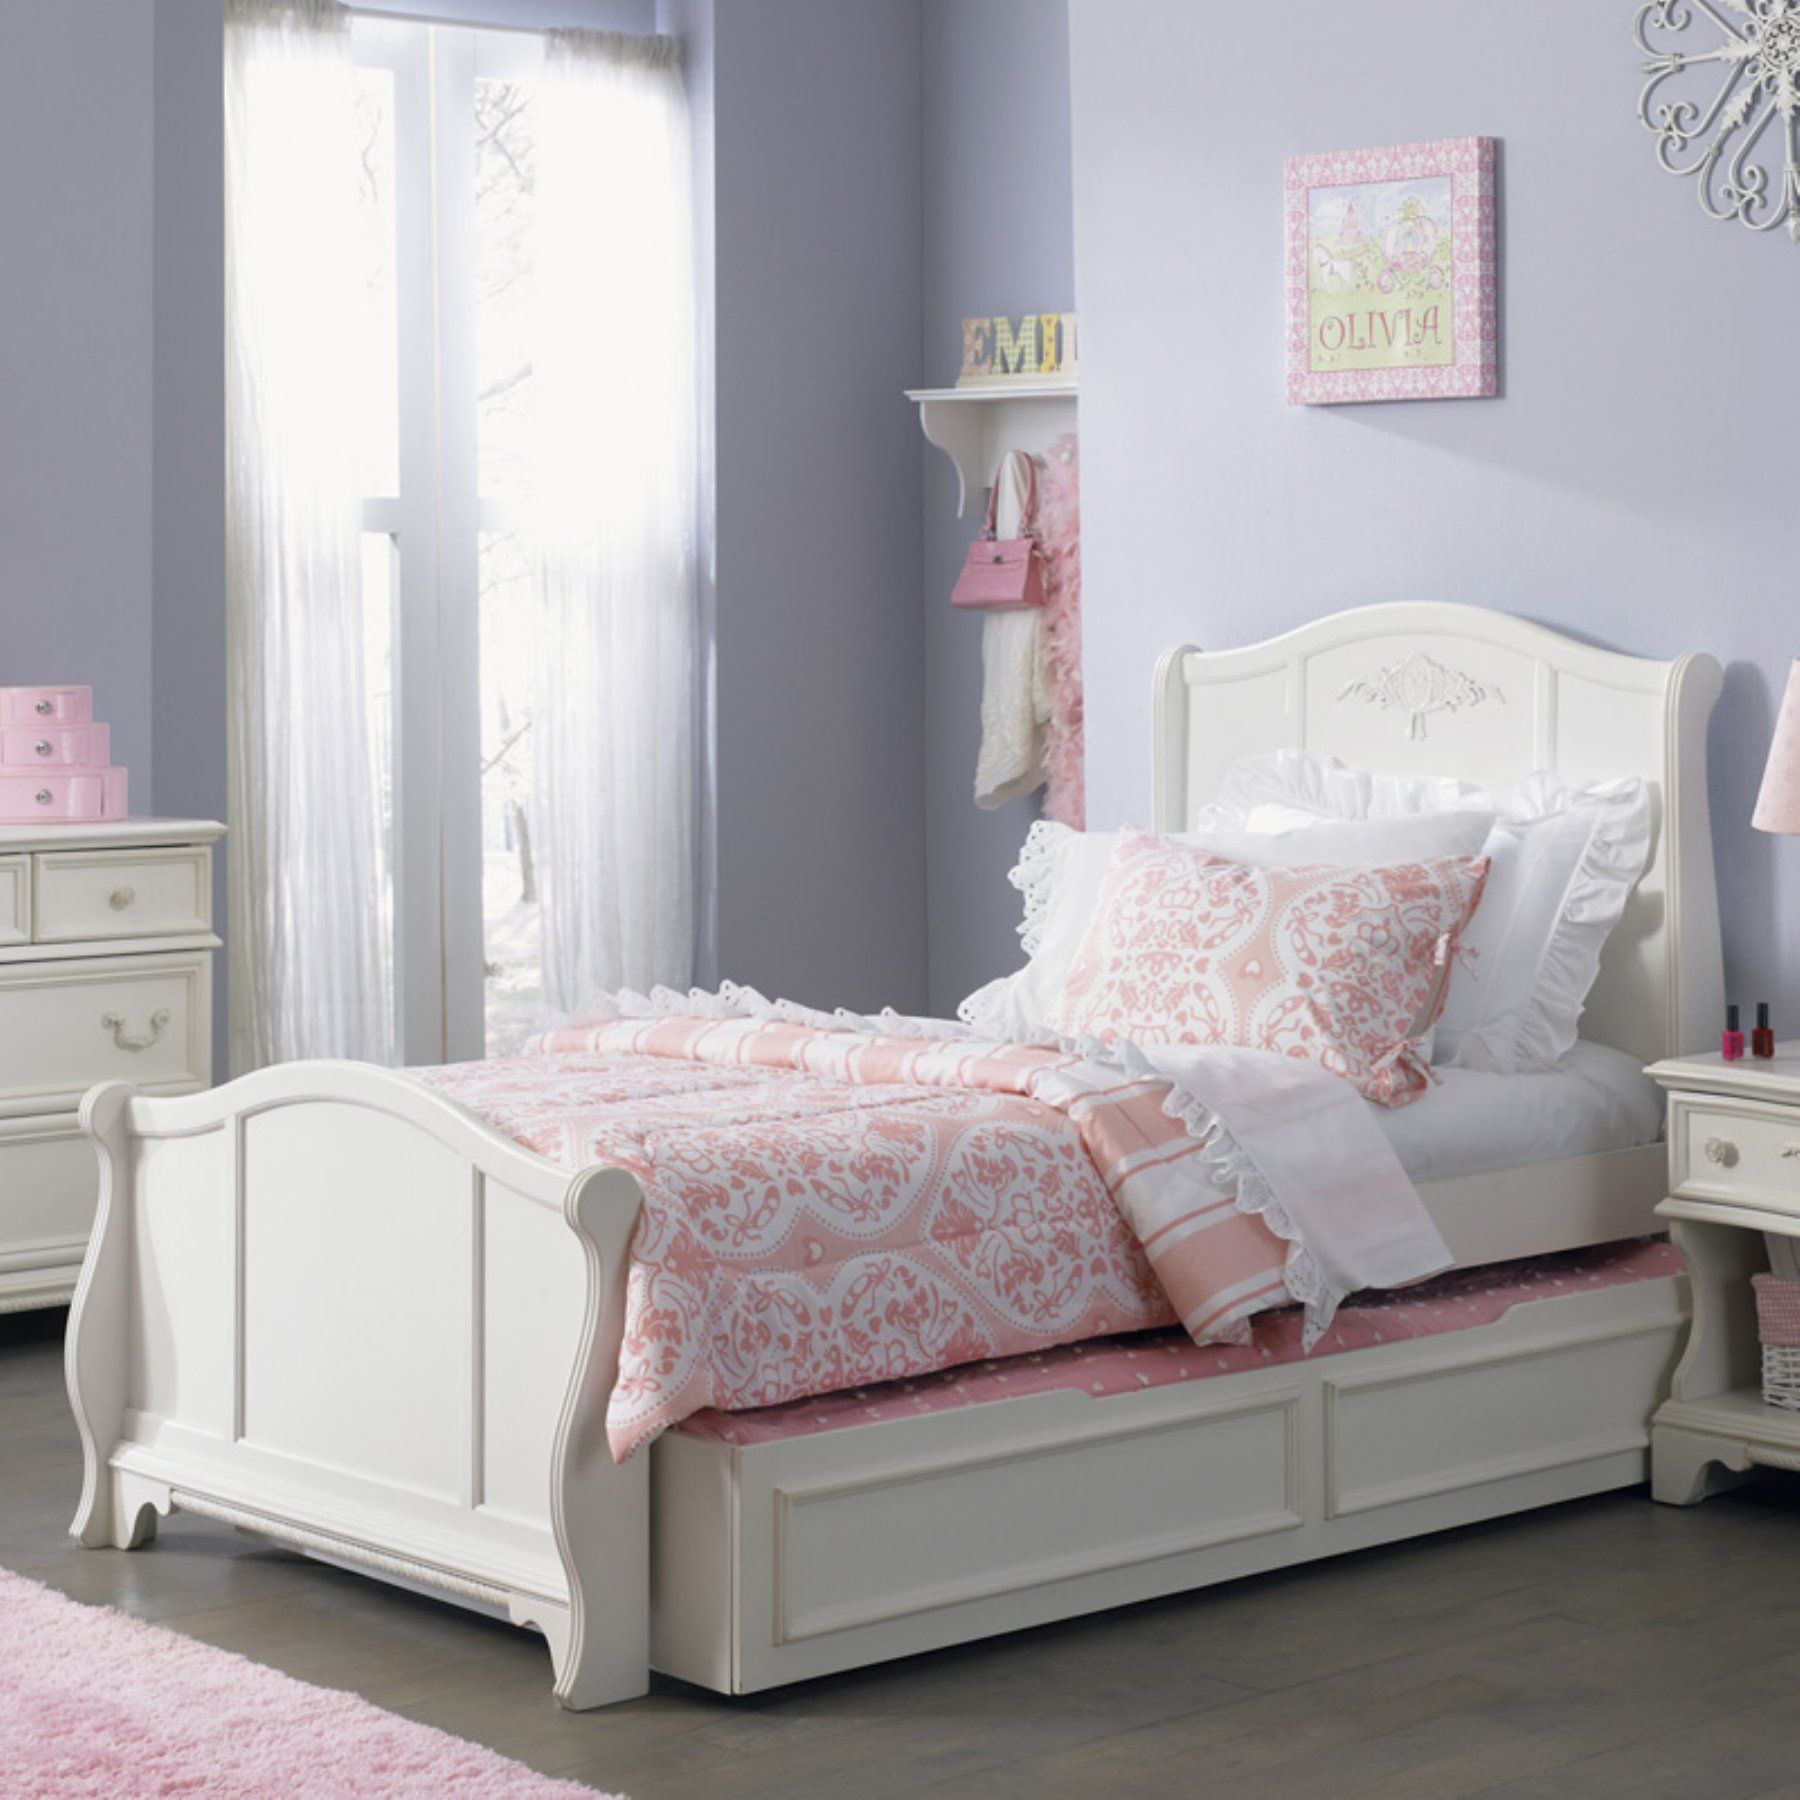 Liberty Furniture Arielle Sleigh Trundle Bed - LFI1249